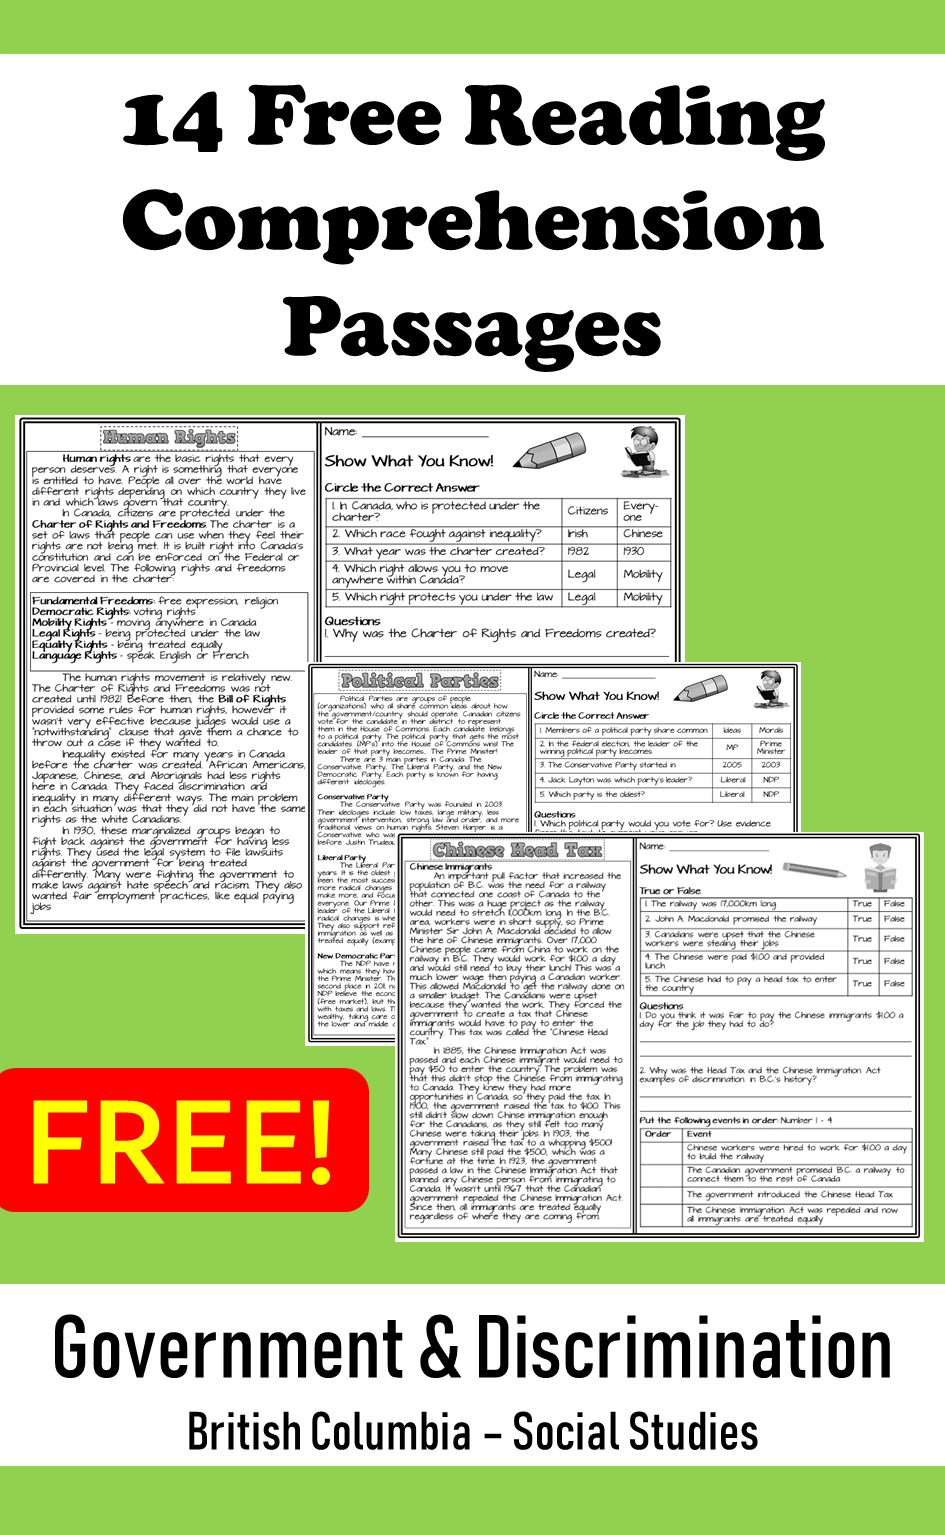 small resolution of 14 Free Reading Comprehension Passages for British Columbia Social Studies    Reading comprehension passages